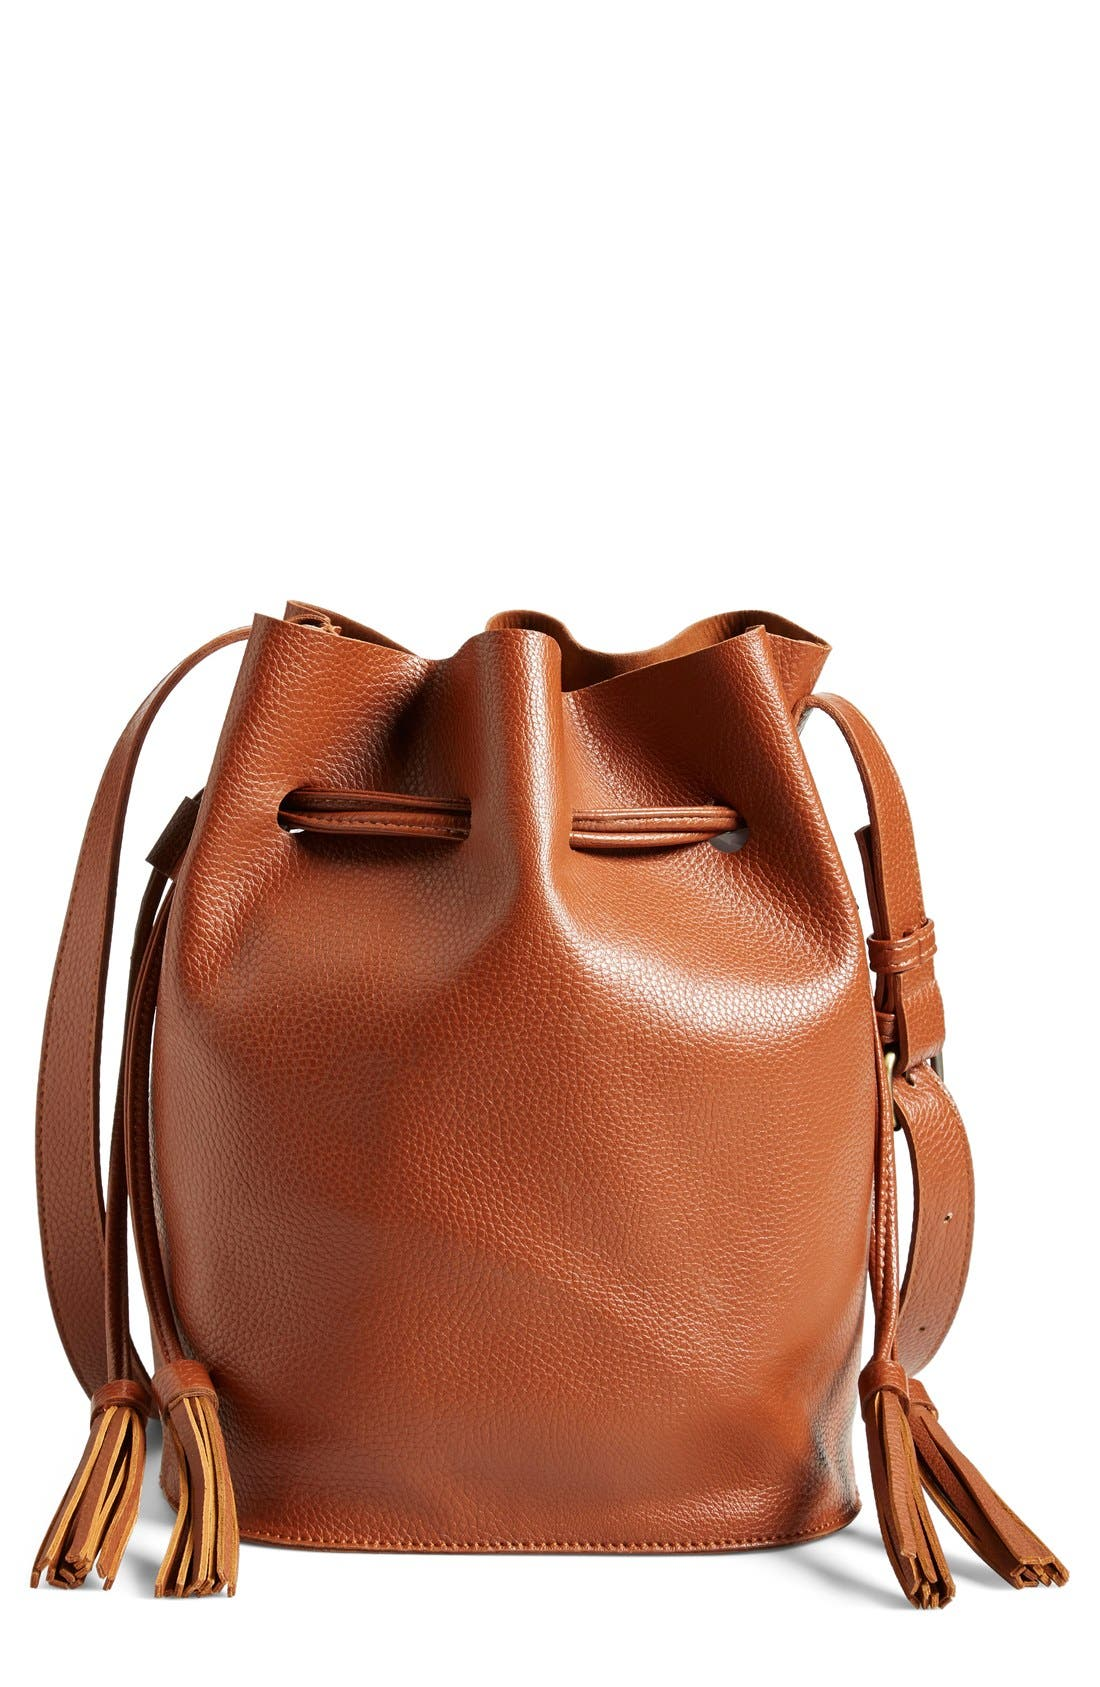 Alternate Image 1 Selected - Street Level Faux Leather Bucket Bag (Online Only)